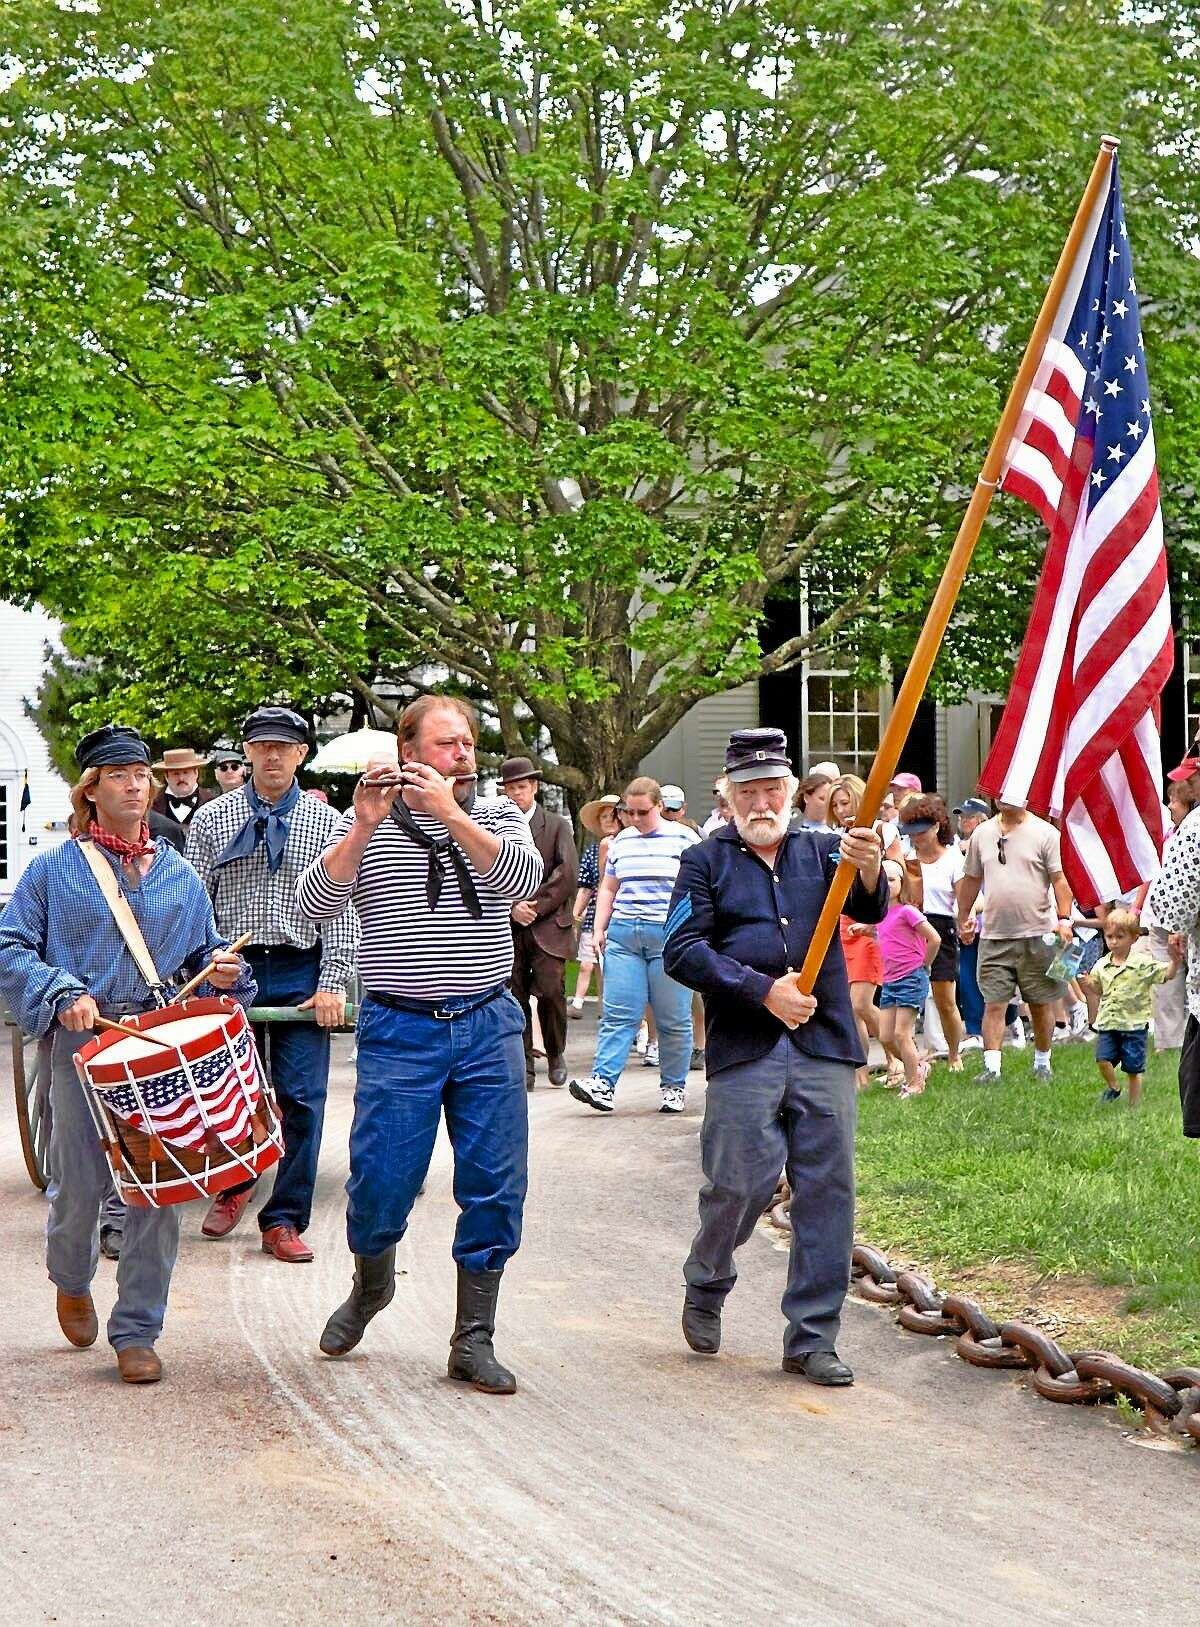 The Decoration Day procession at Mystic Seaport.